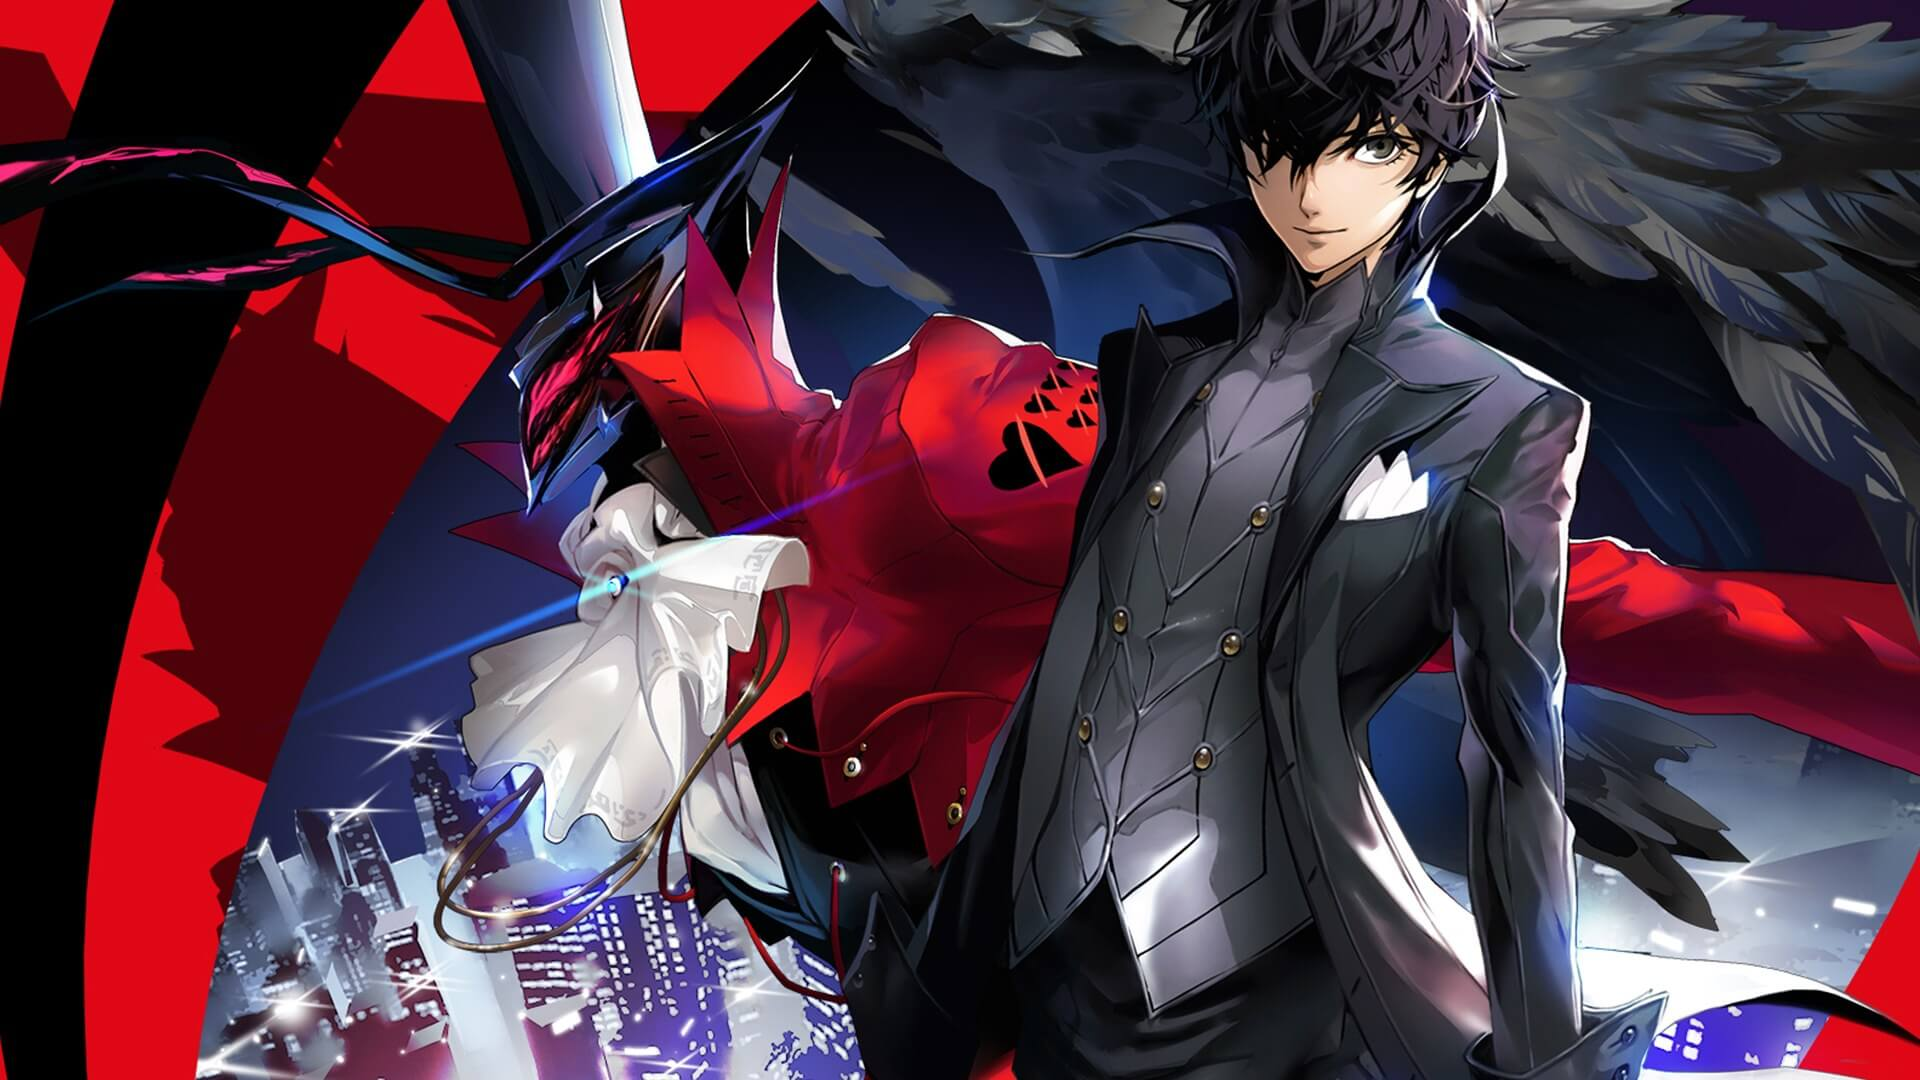 Persona 5 for Switch is not your father's RPG